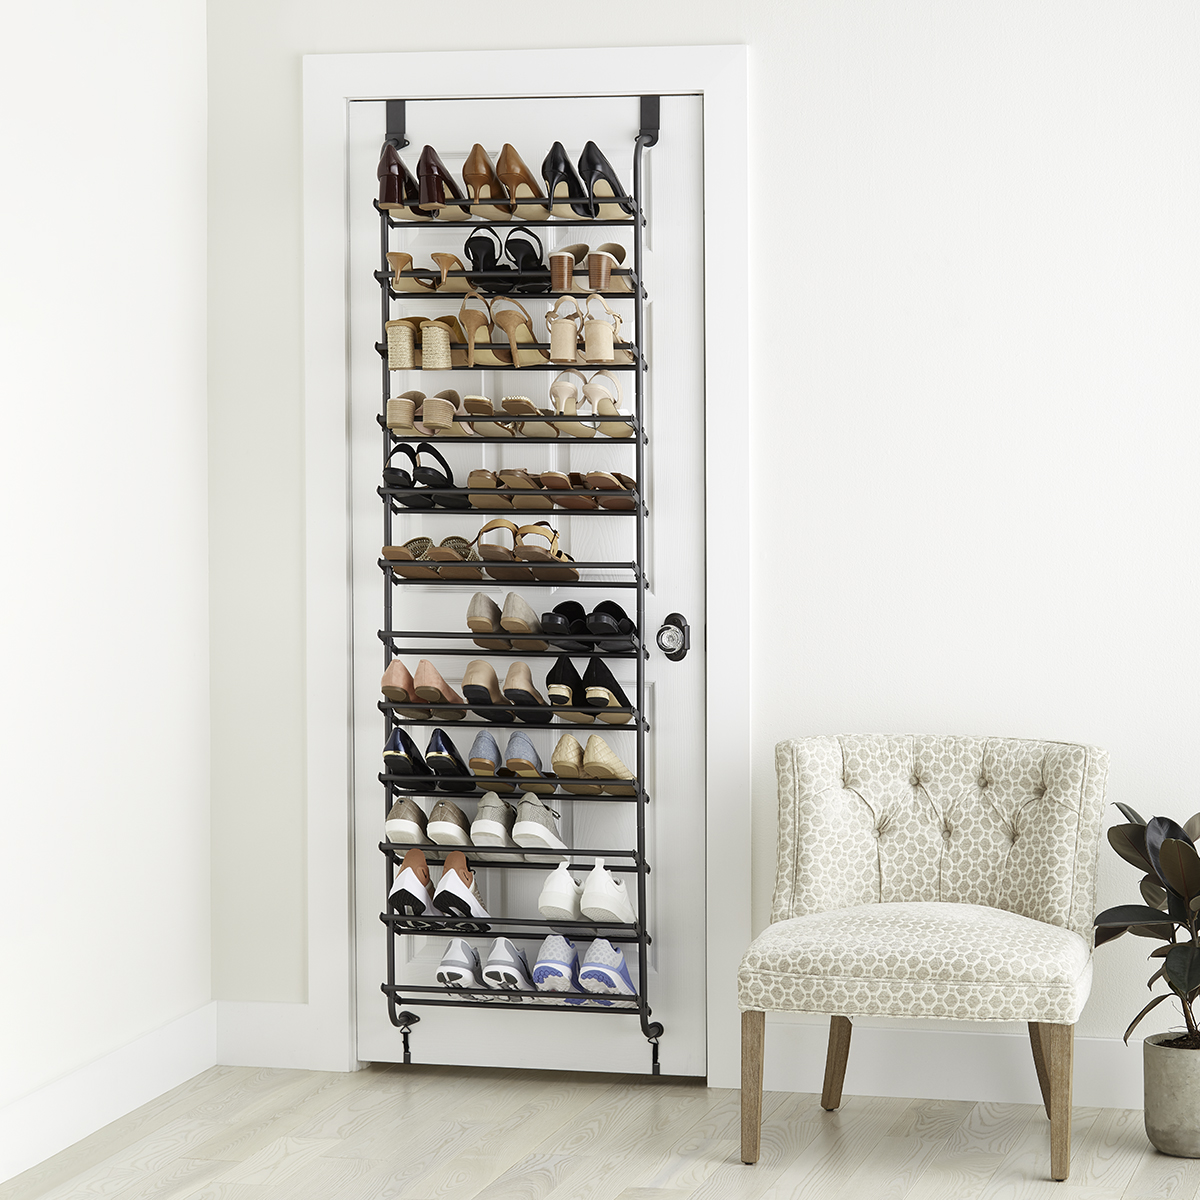 Graphite 12-Tier Over the Door Shoe Rack